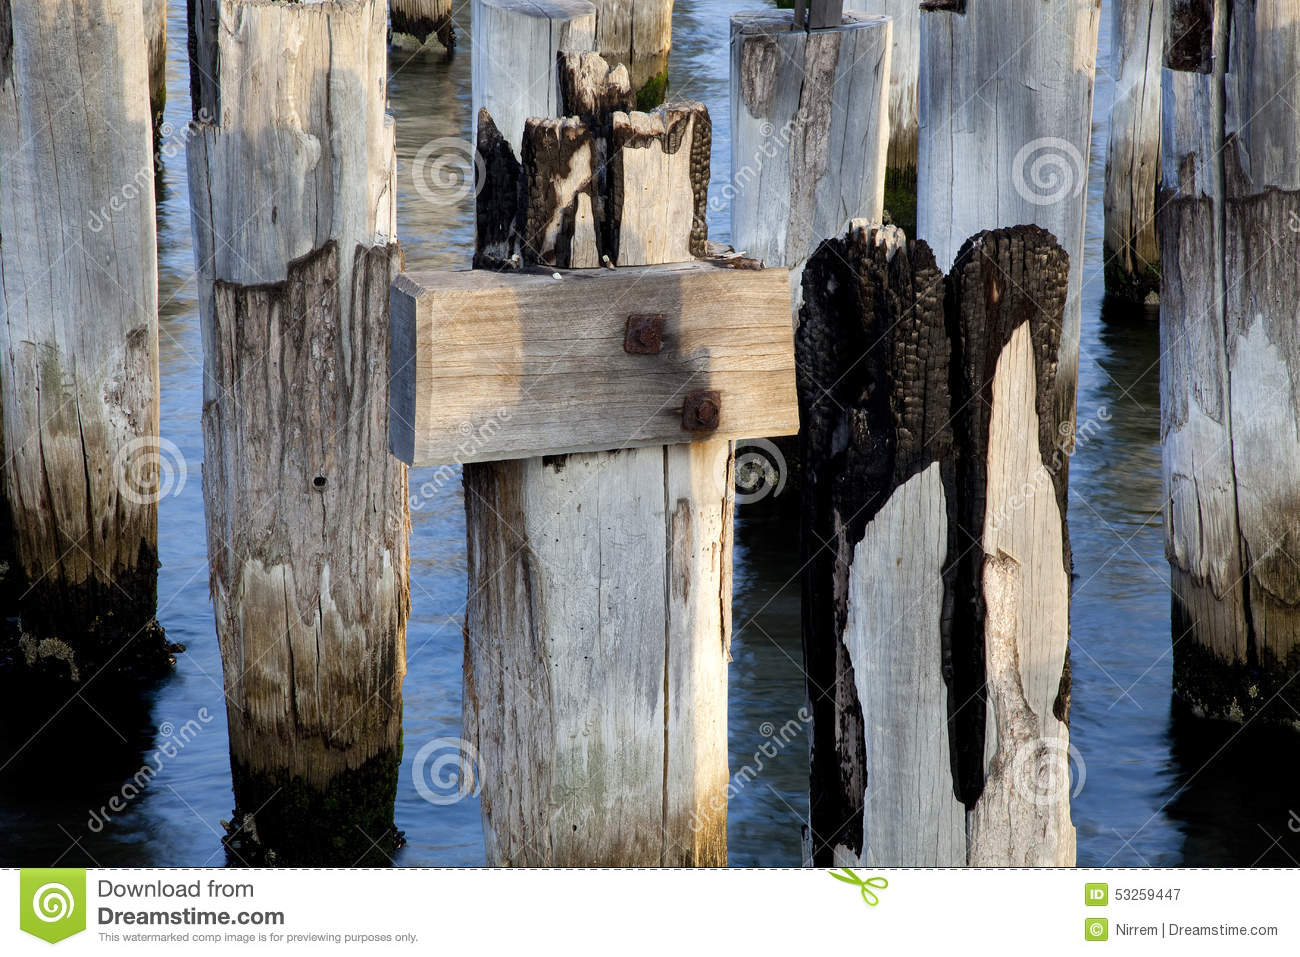 Pier post close up stock image  Image of piles, seaside